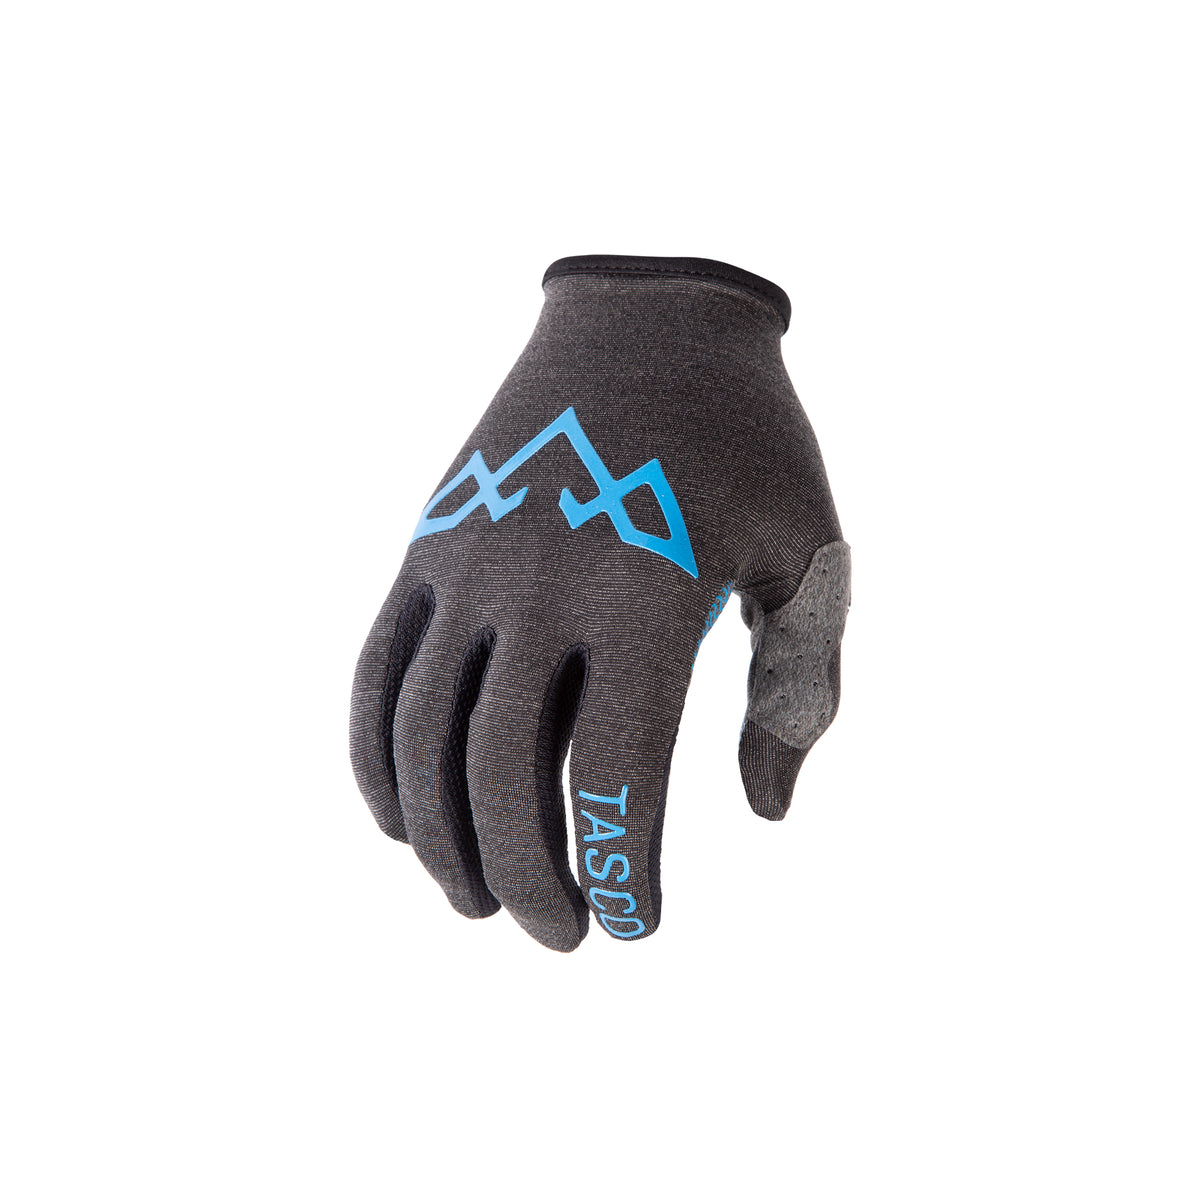 RECON Ultralight Cycling Gloves - Cyan Pop - MTB Lifestyle | TASCO MTB